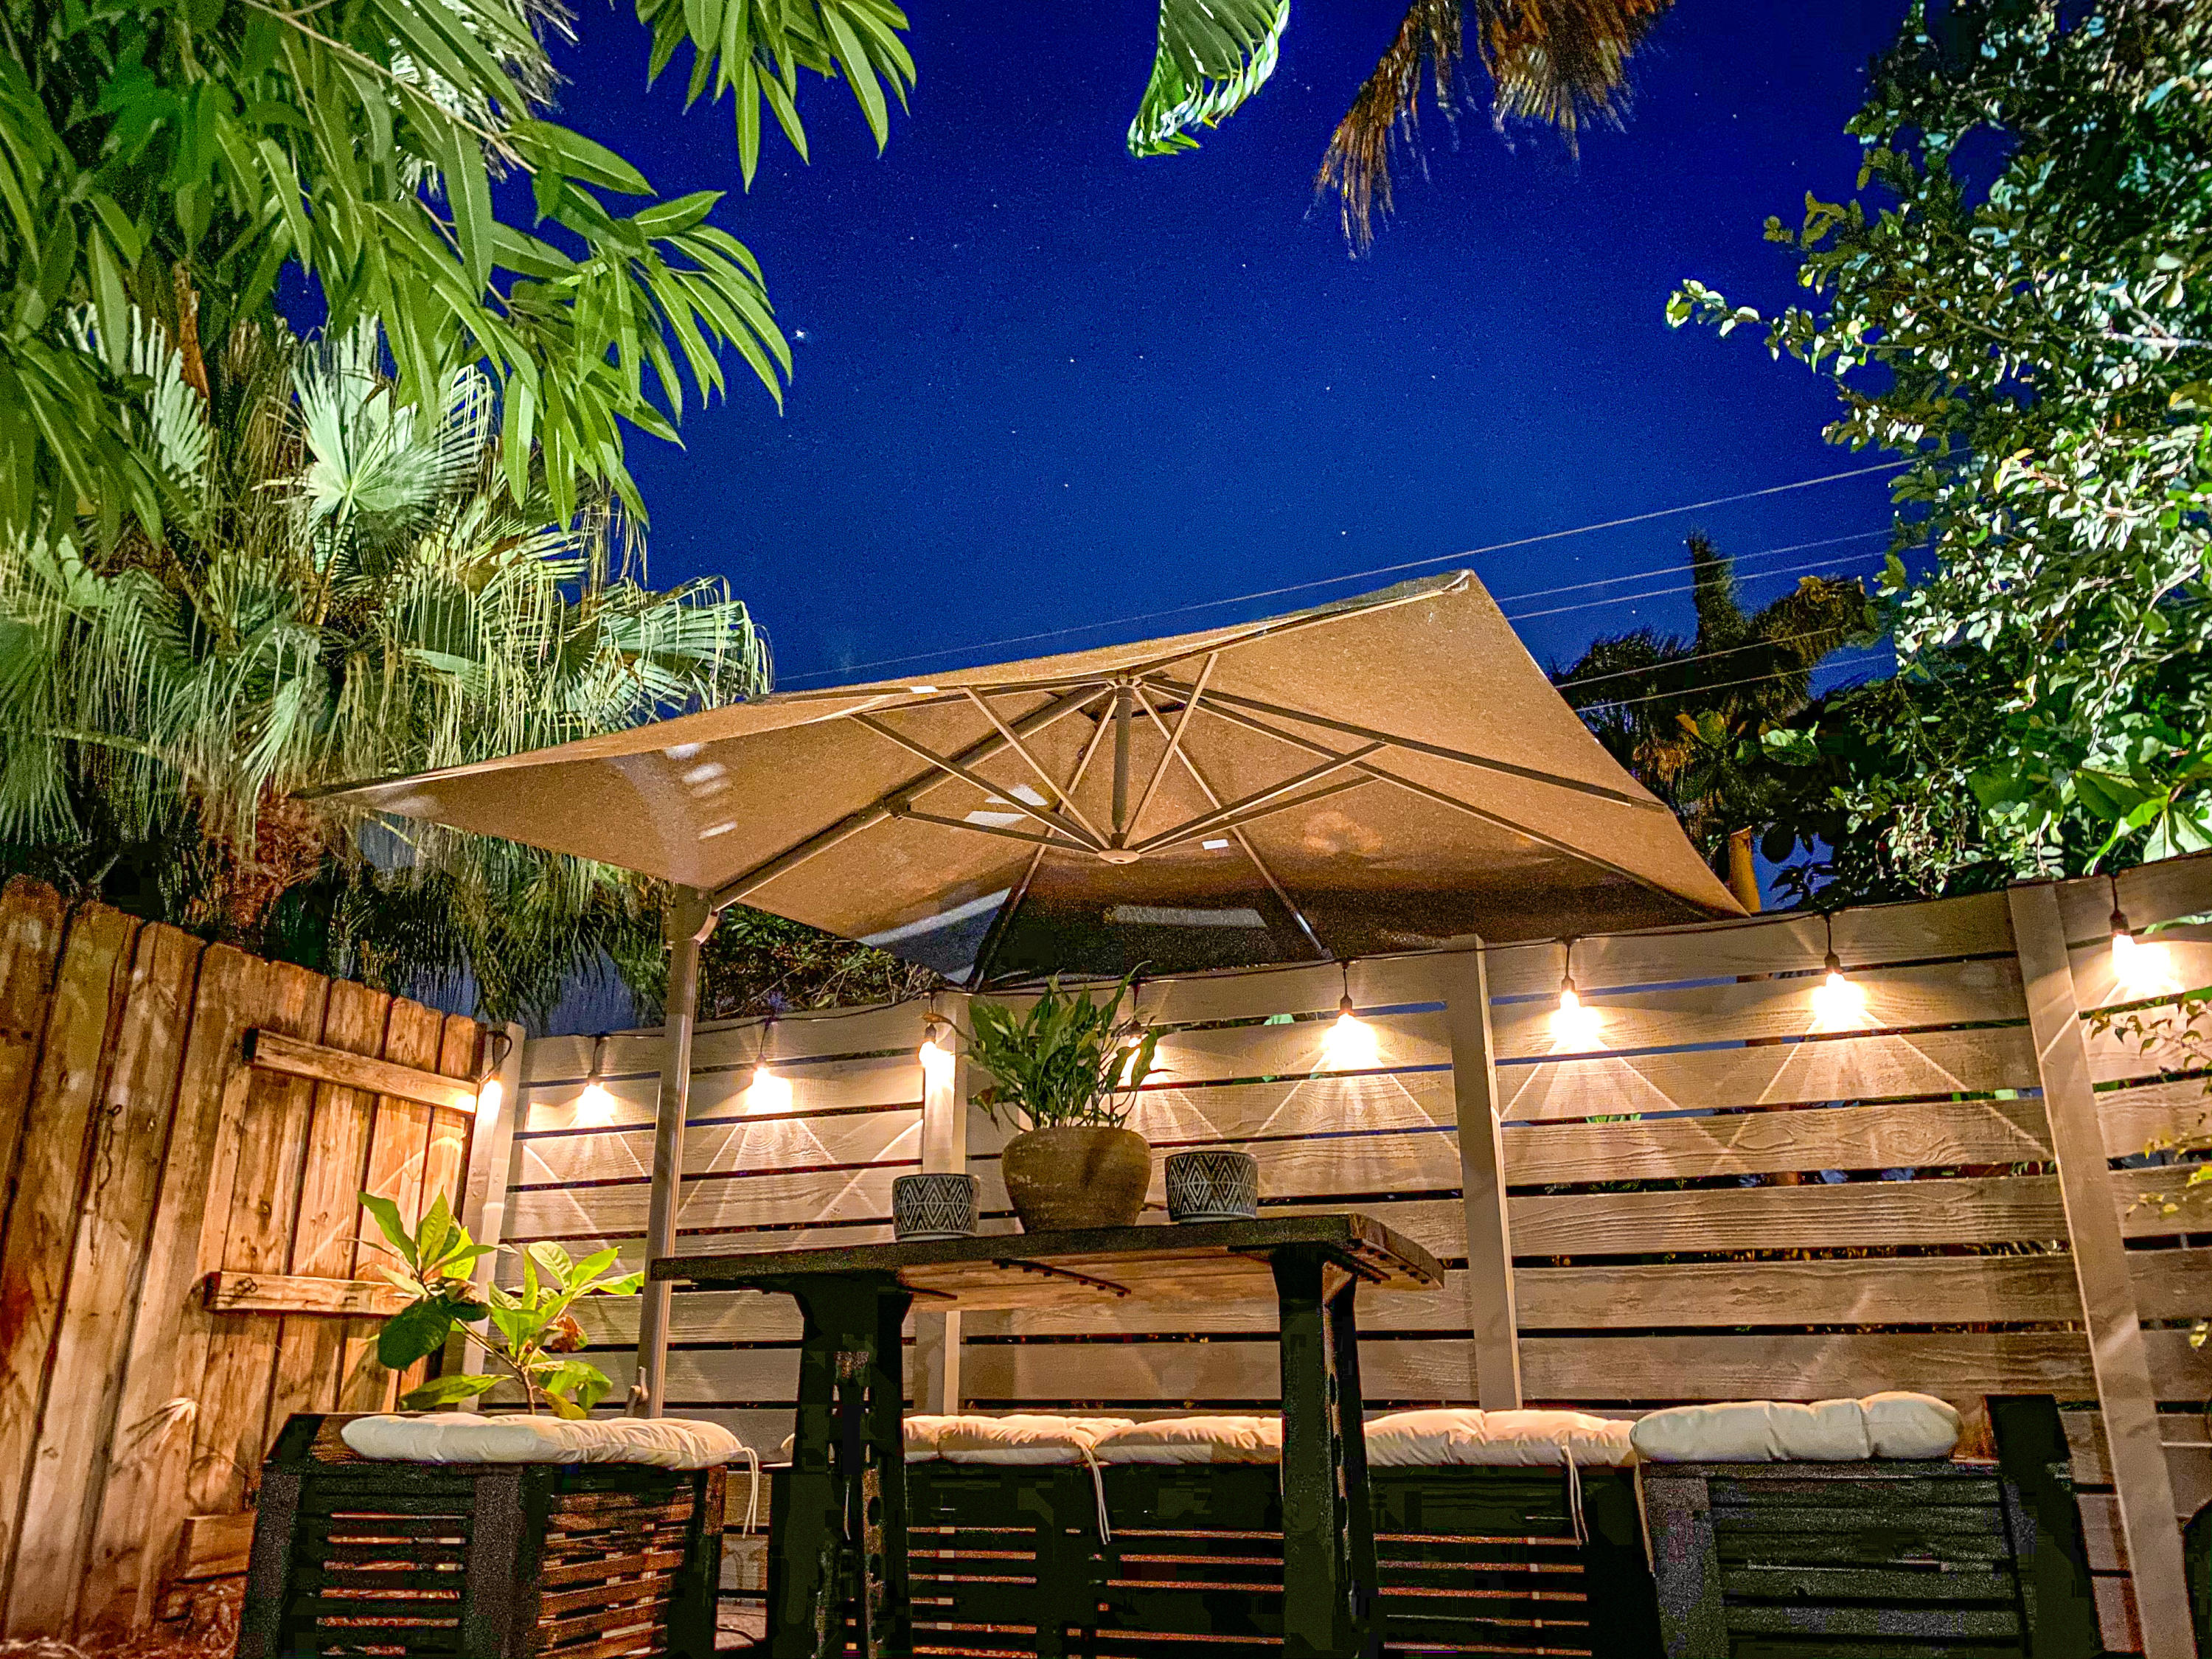 Backyard seating area with lights